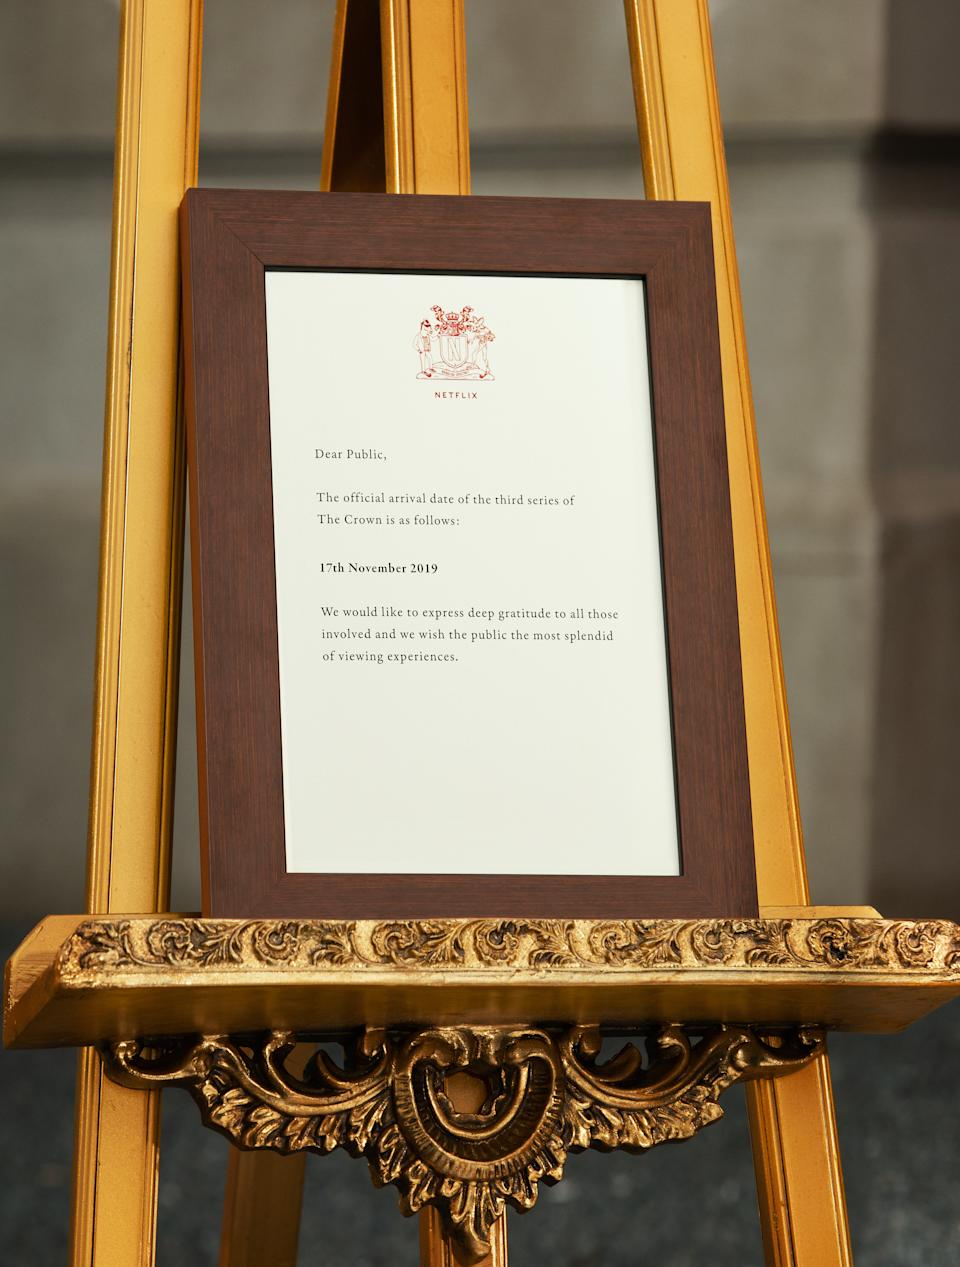 The Royal Family shares important announcements on an easel outside Buckingham Palace. (Netflix)